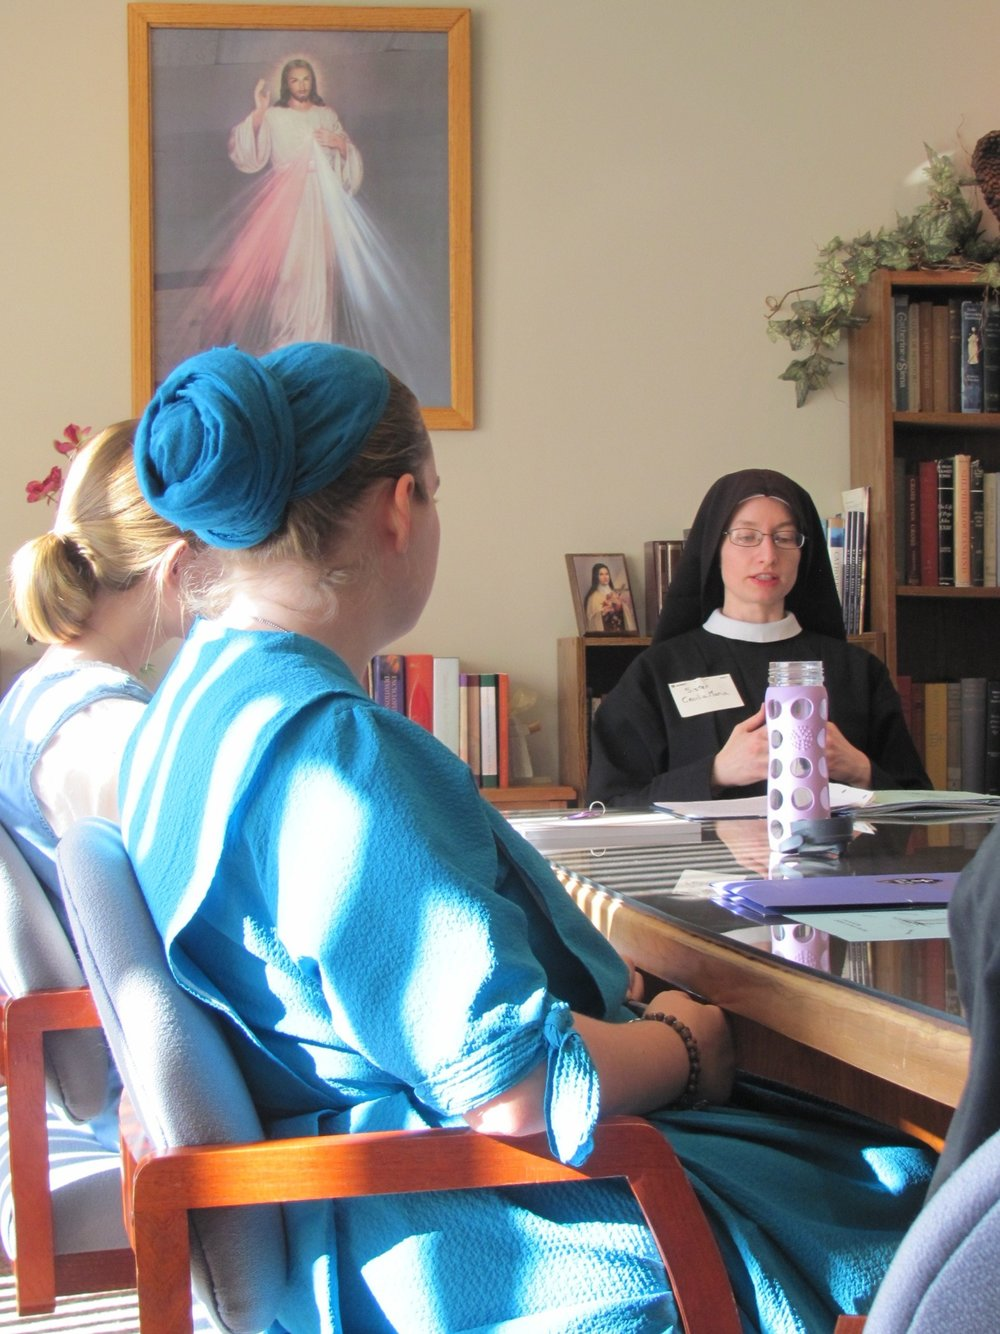 Sr. Cecilia Maria gives a talk on Our Lady of Sorrows and Passionist Life